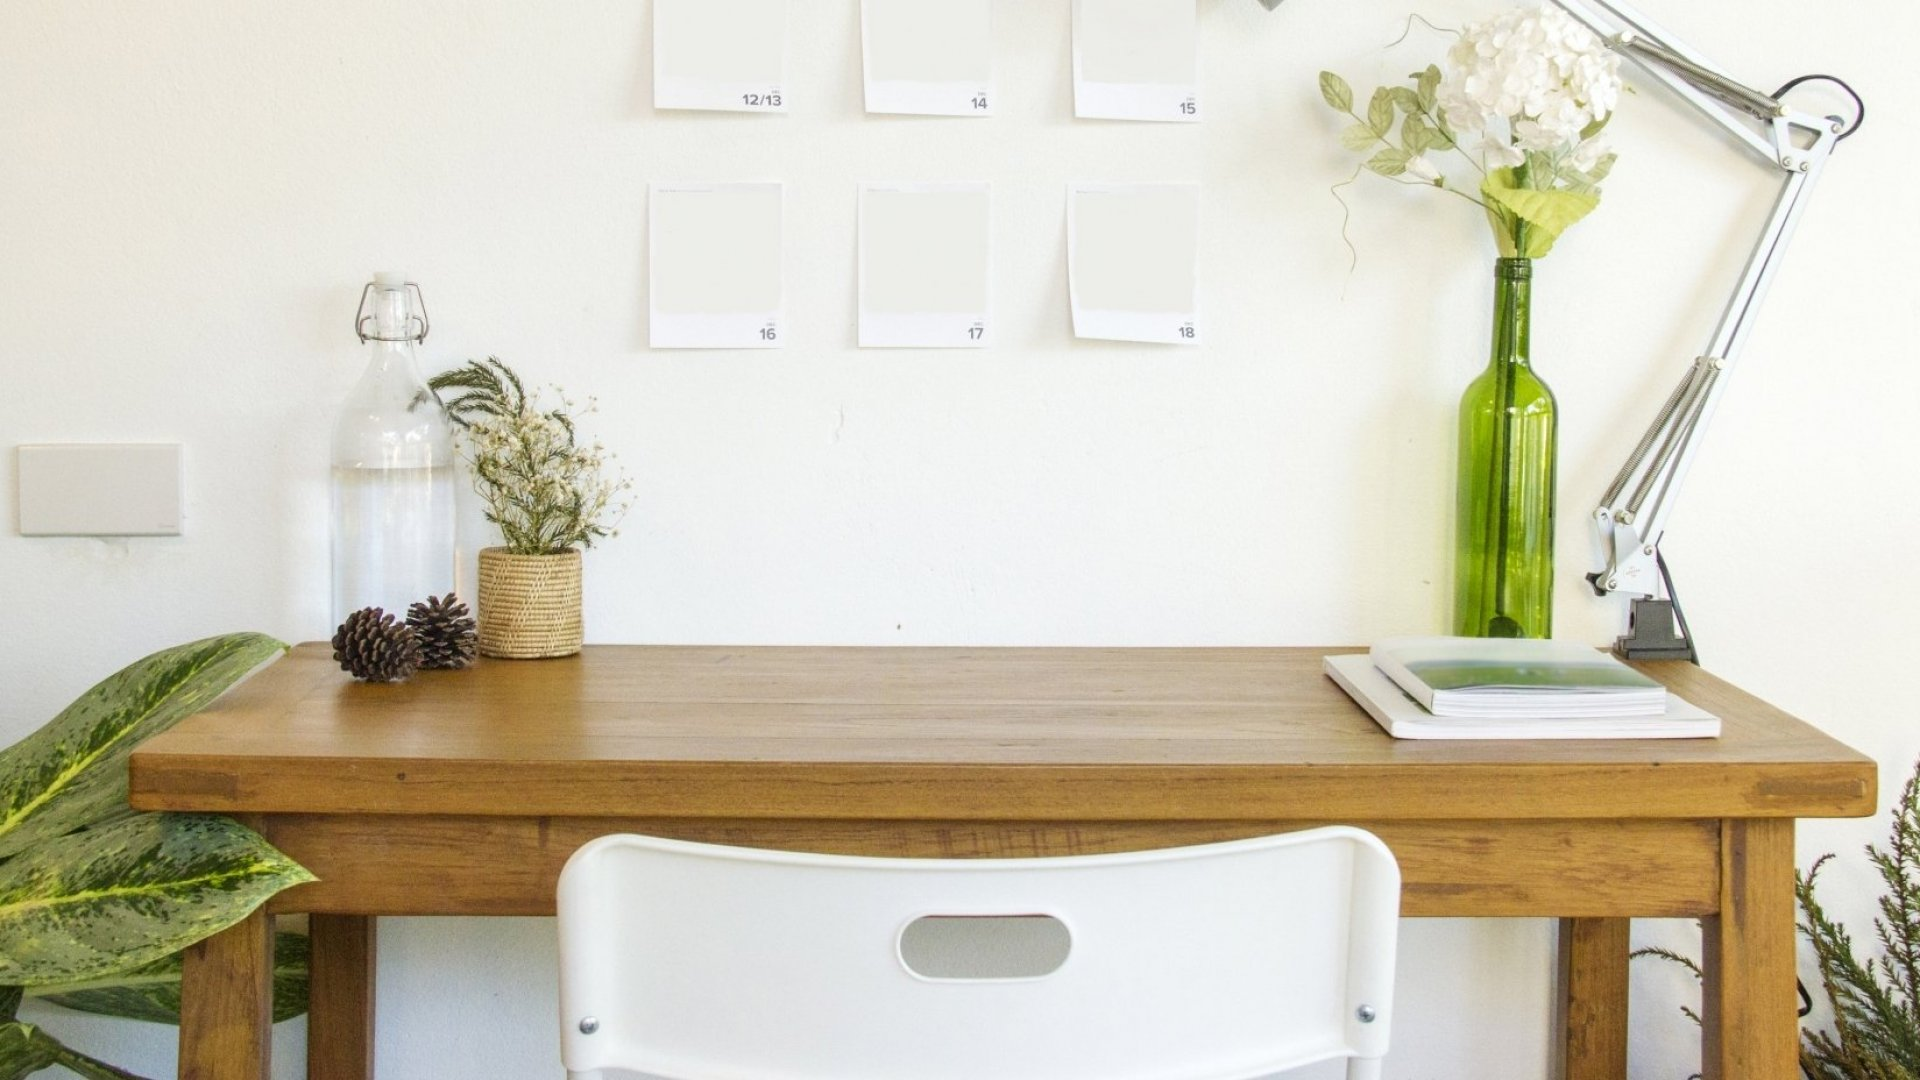 5 Tiny Changes to Your Desk That Will Make You Much More Productive